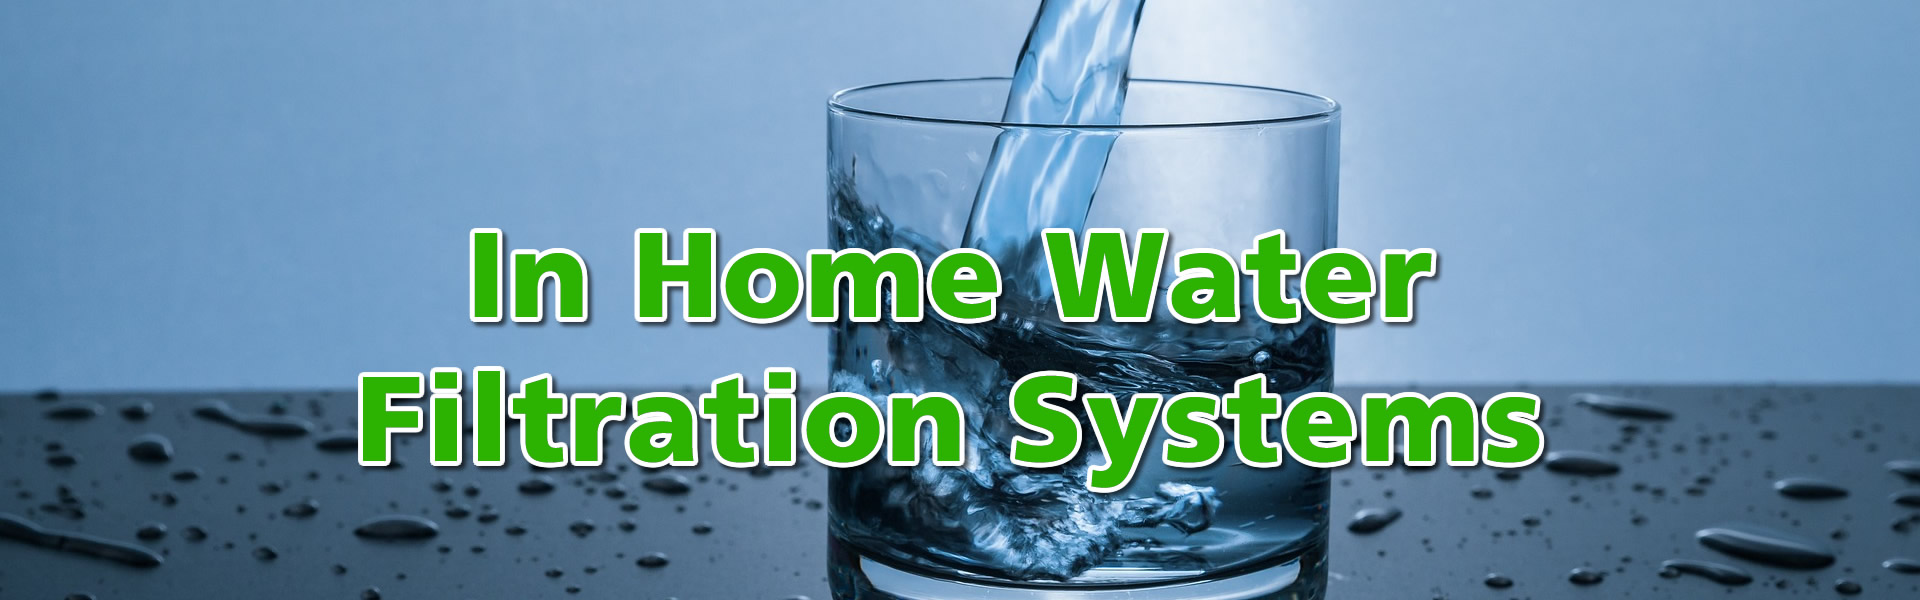 In Home Water Filtration Systems